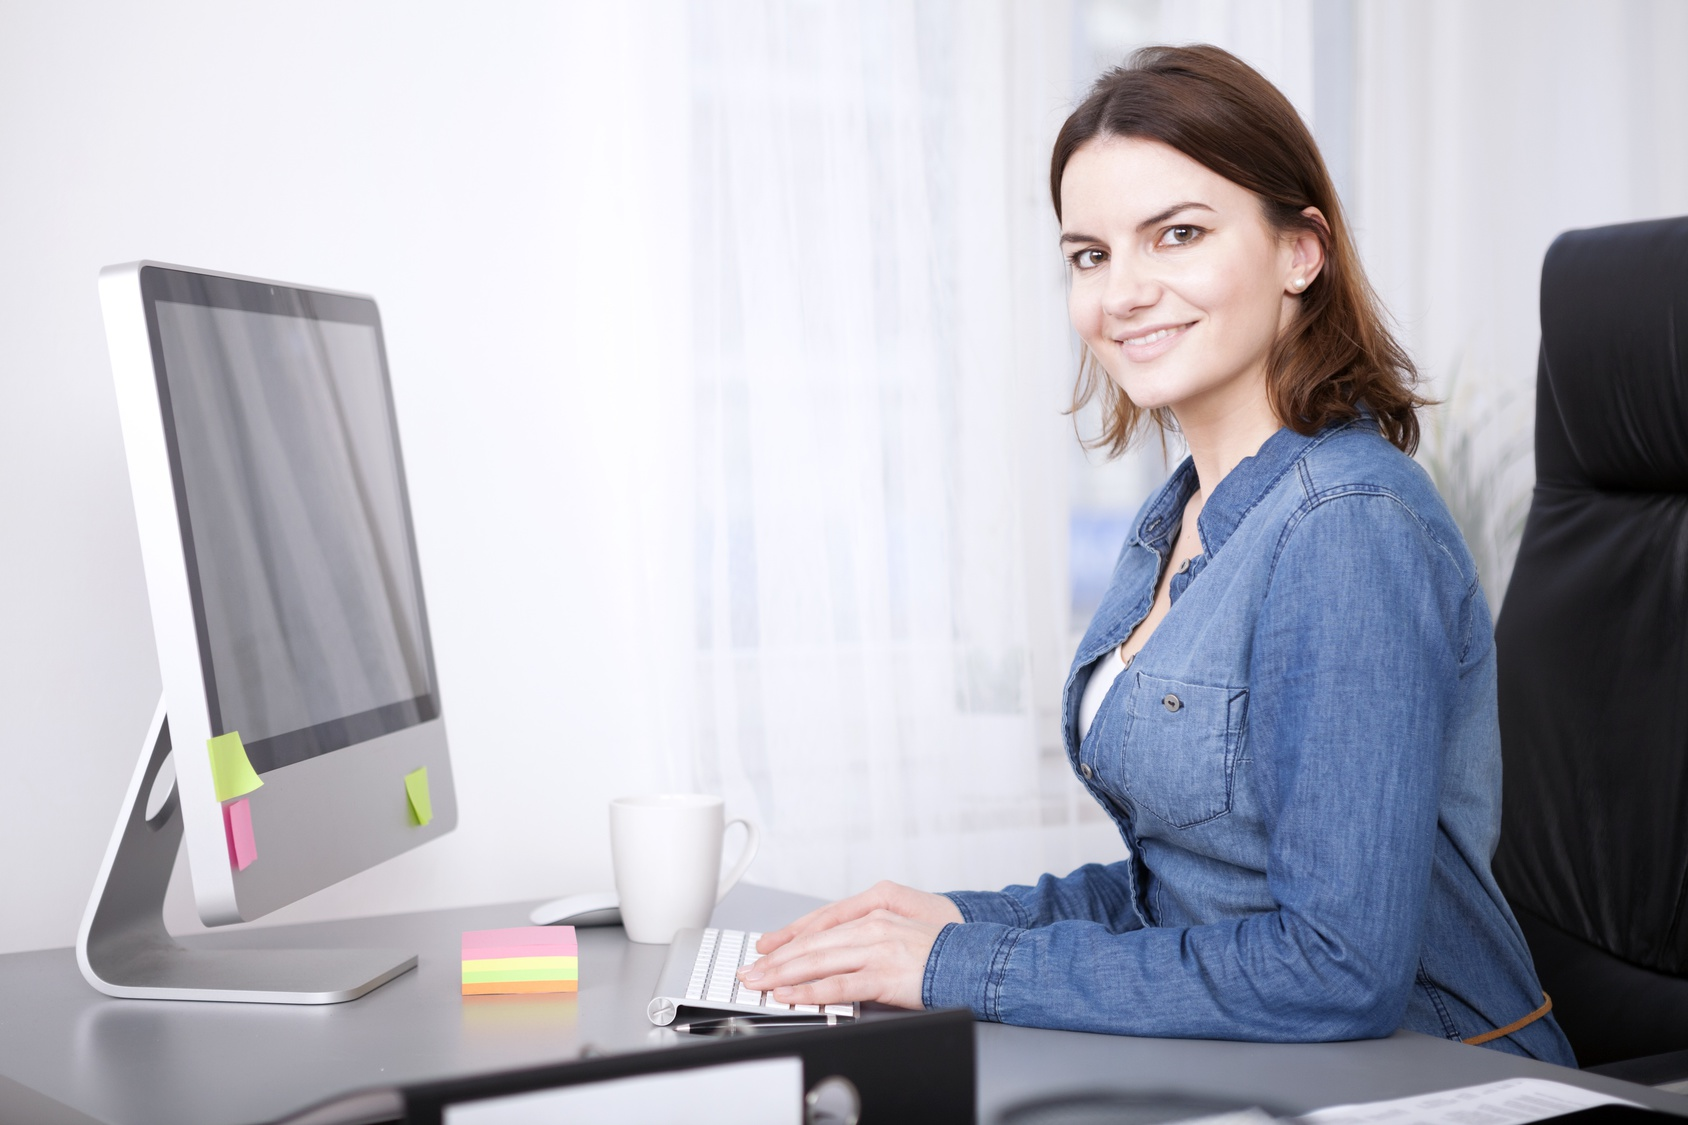 Attractive successful confident manageress working at her desktop computer in the office turning to smile at the camera, side view